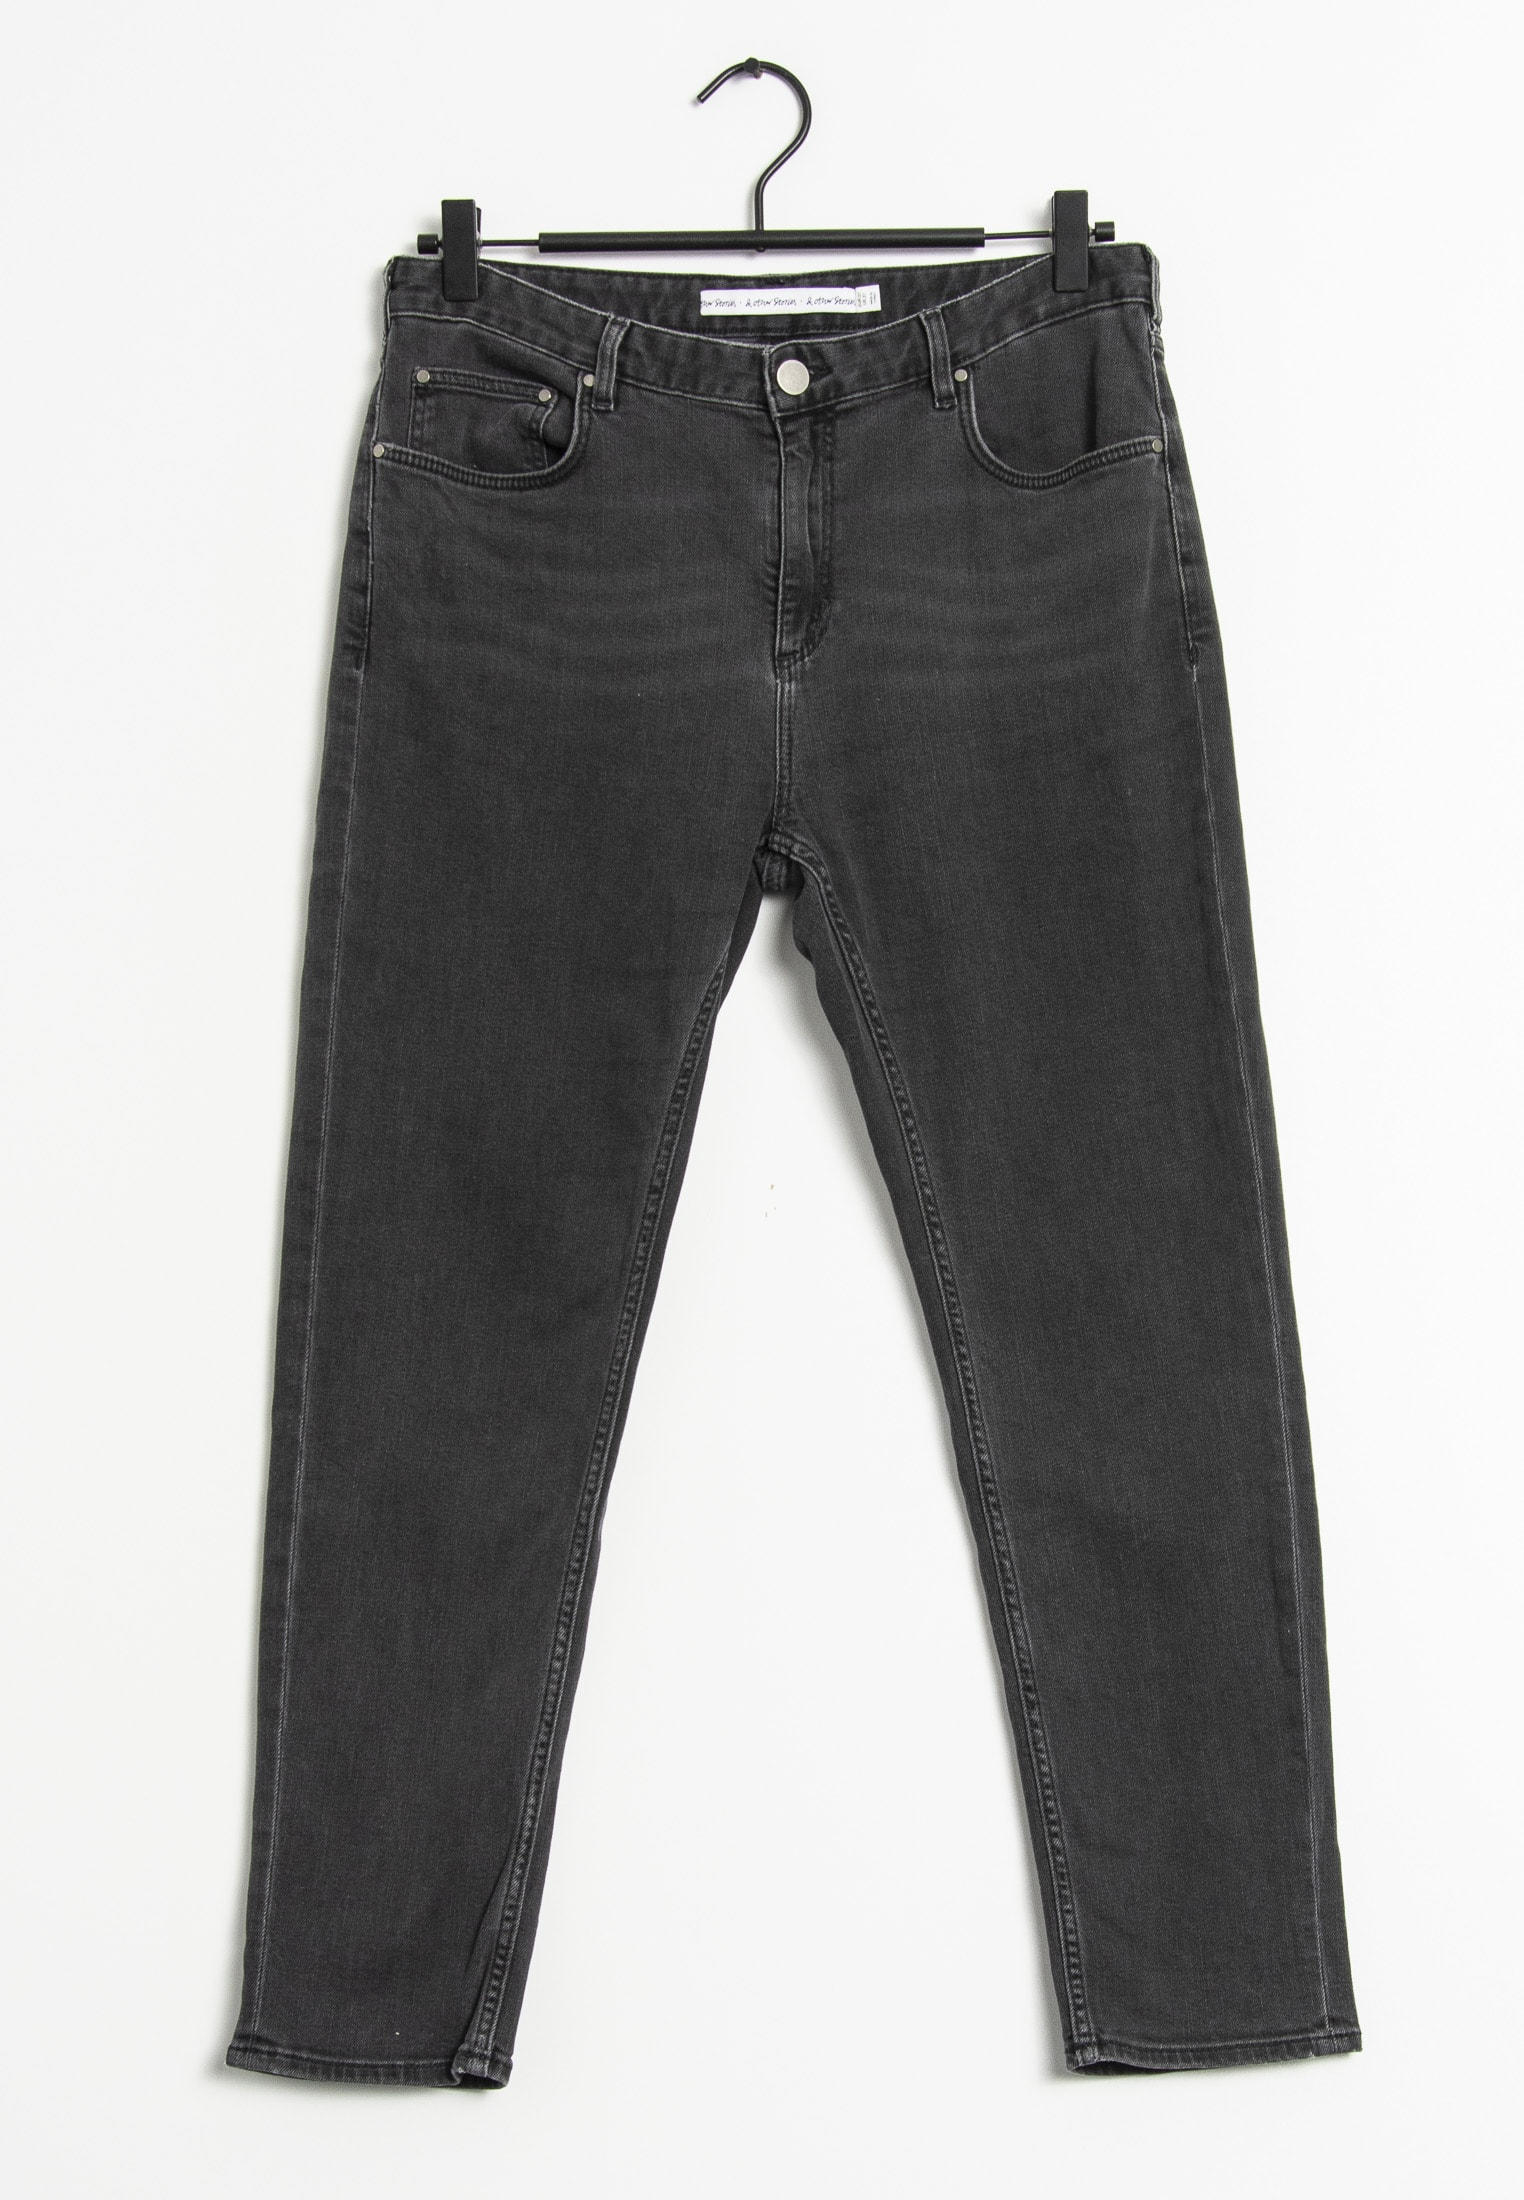 & other stories Jeans Grau Gr.S